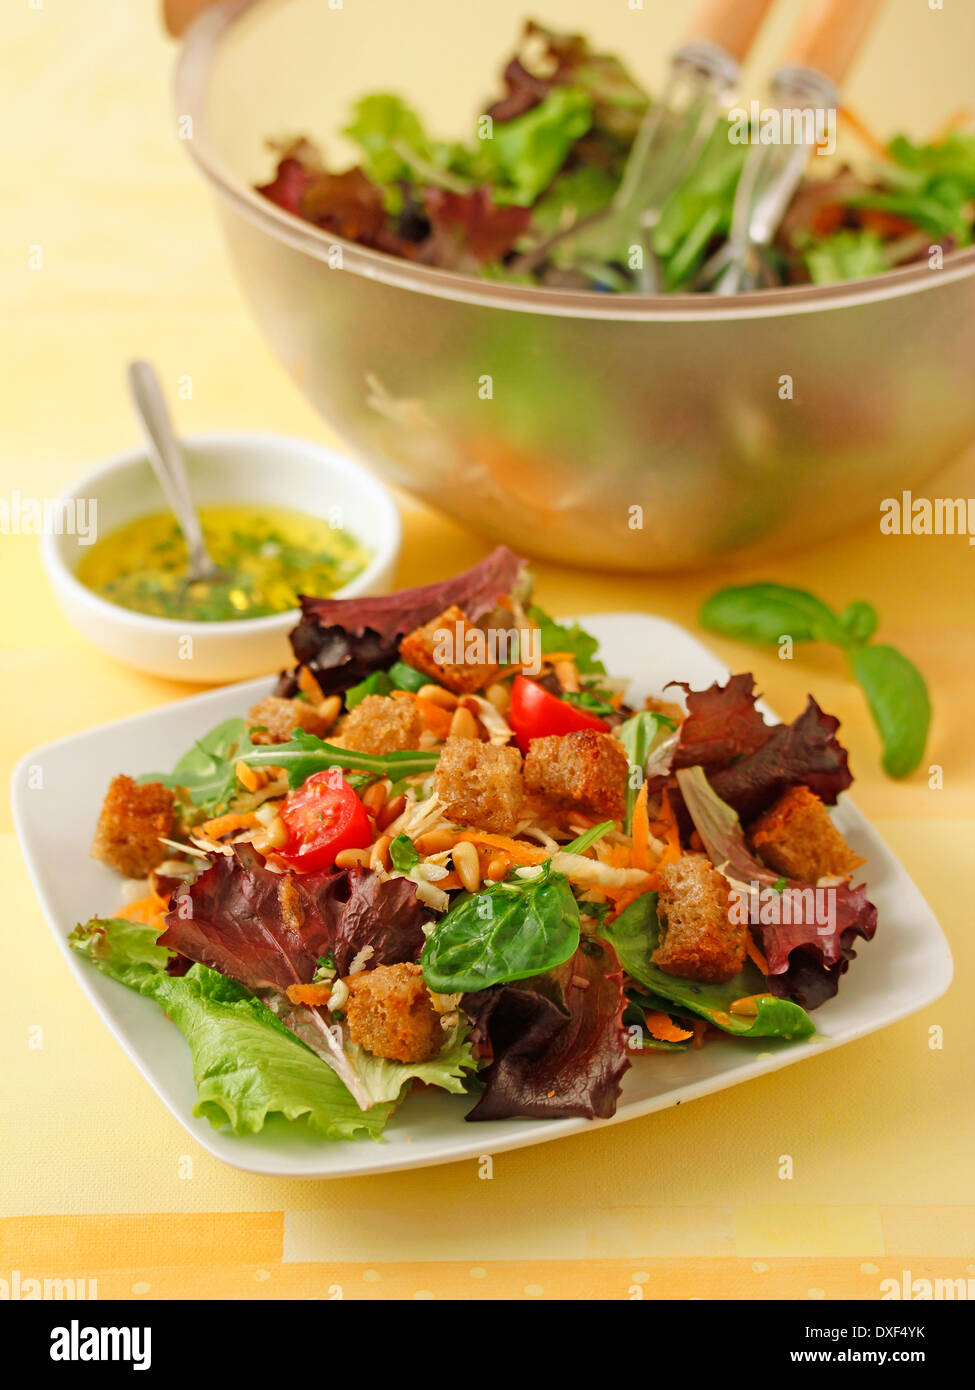 Celeriac salad with pine nuts. Recipe available. - Stock Image